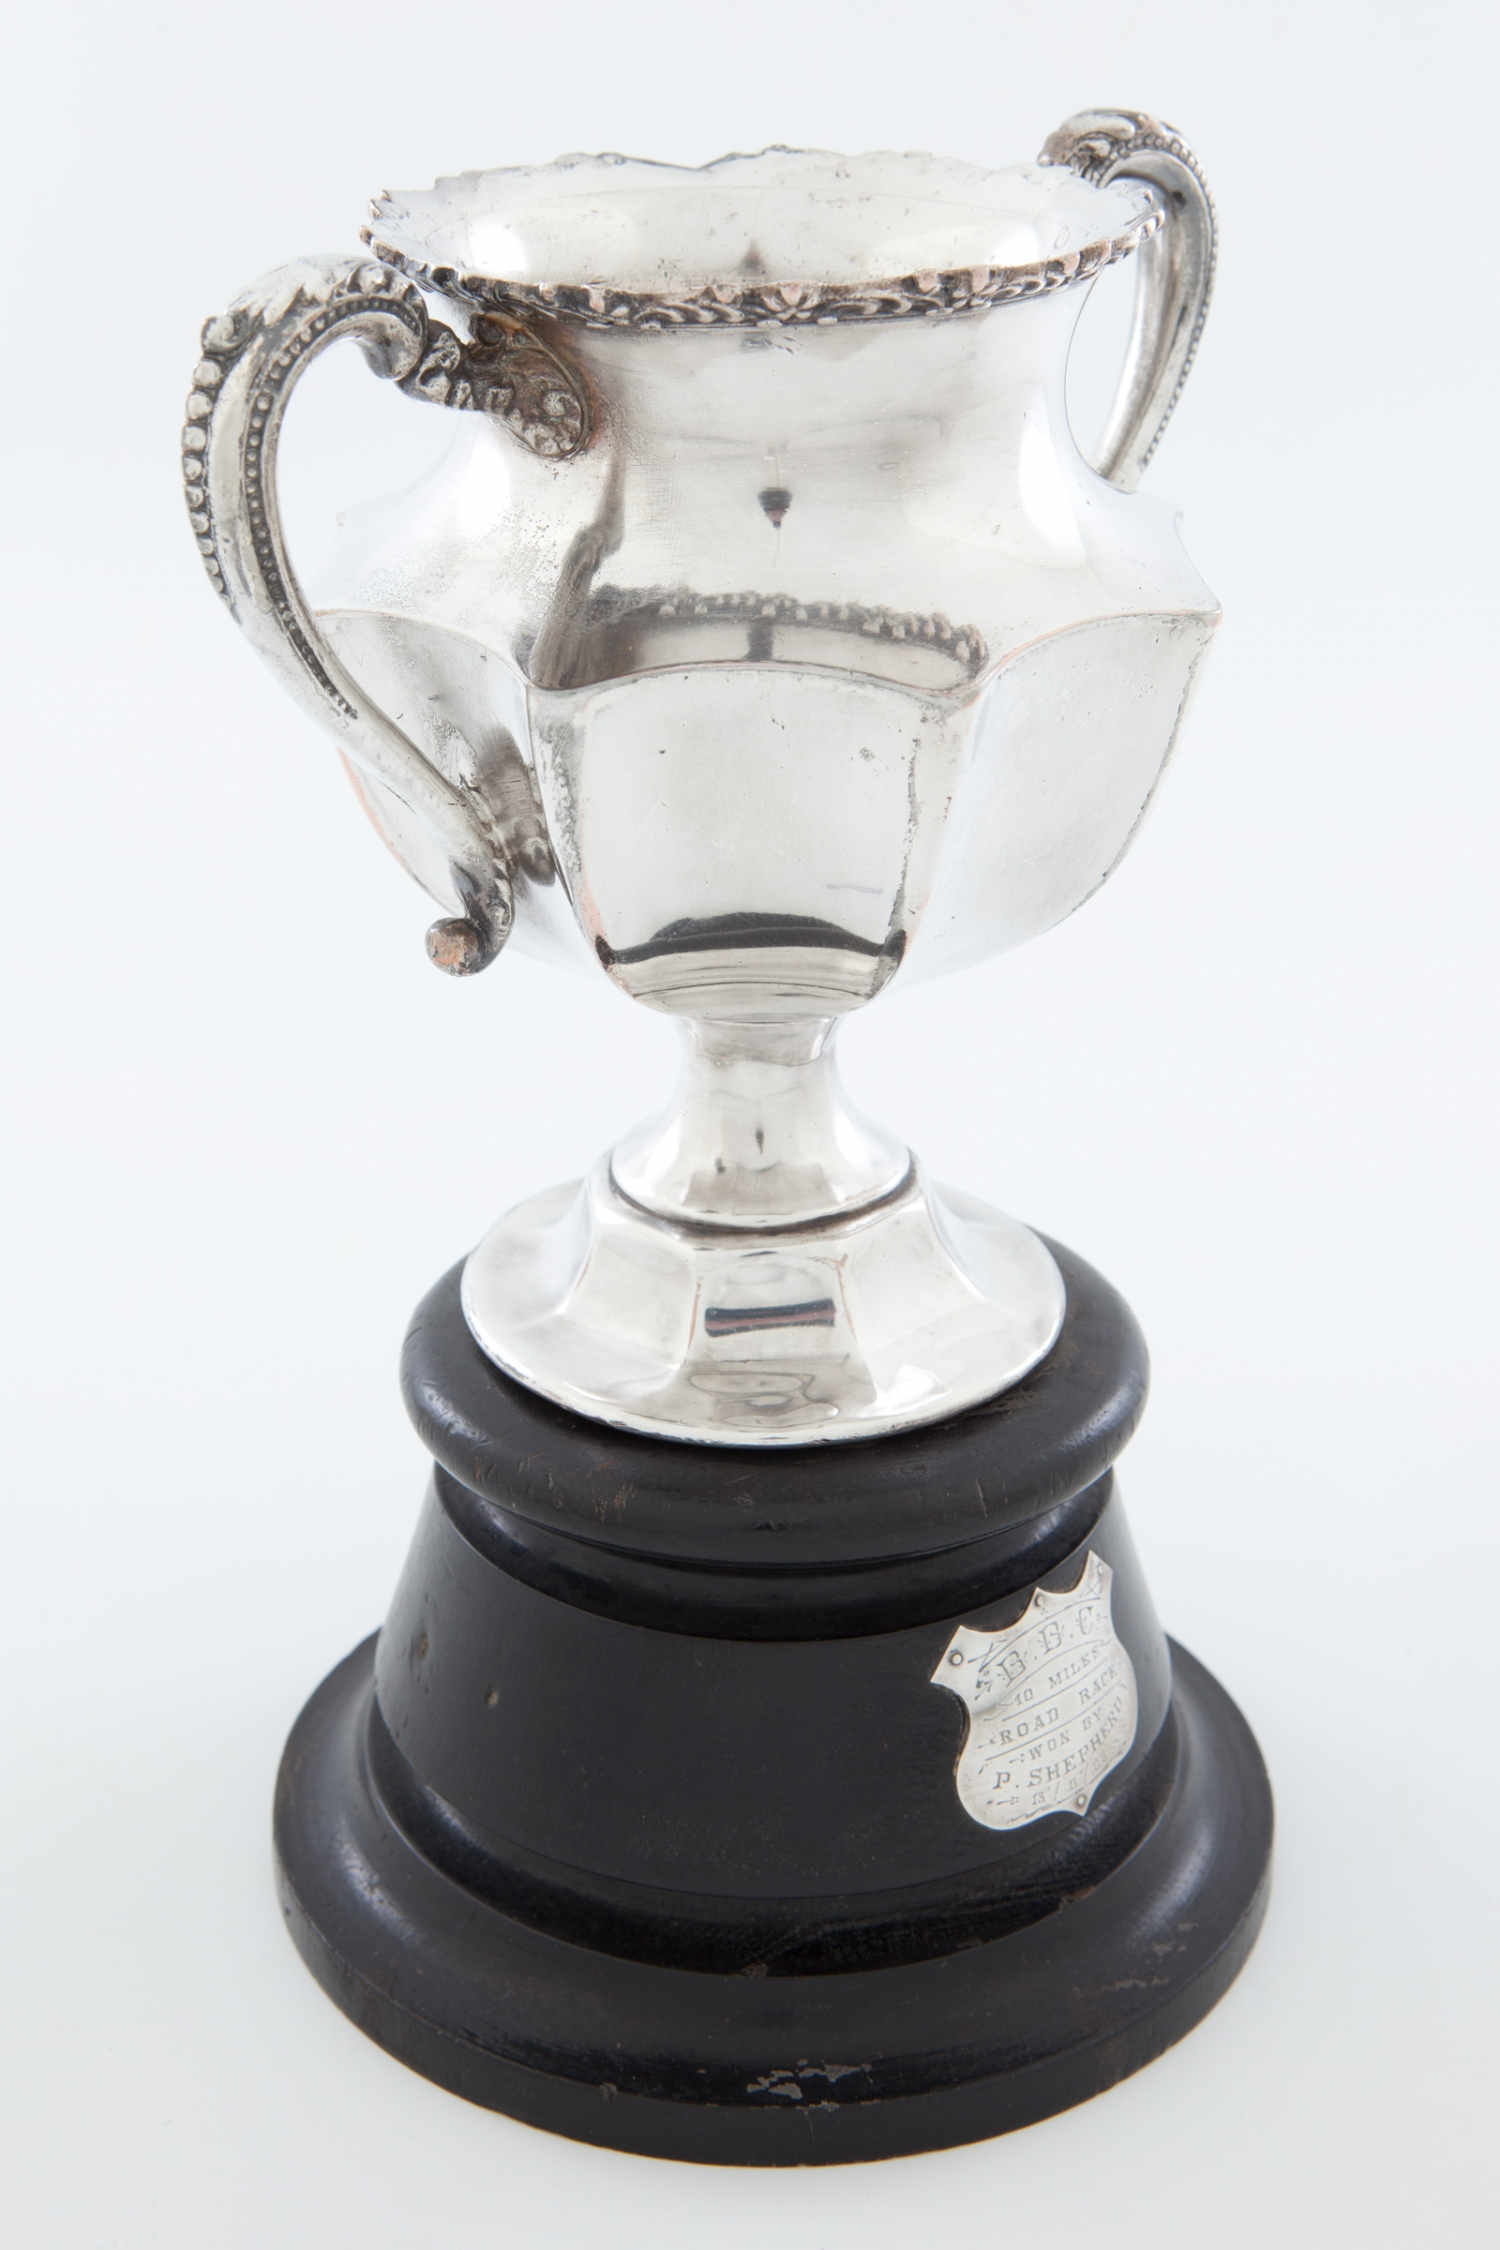 Silver plate cycling trophy awarded to Sergeant Percival Shepherd, 1905